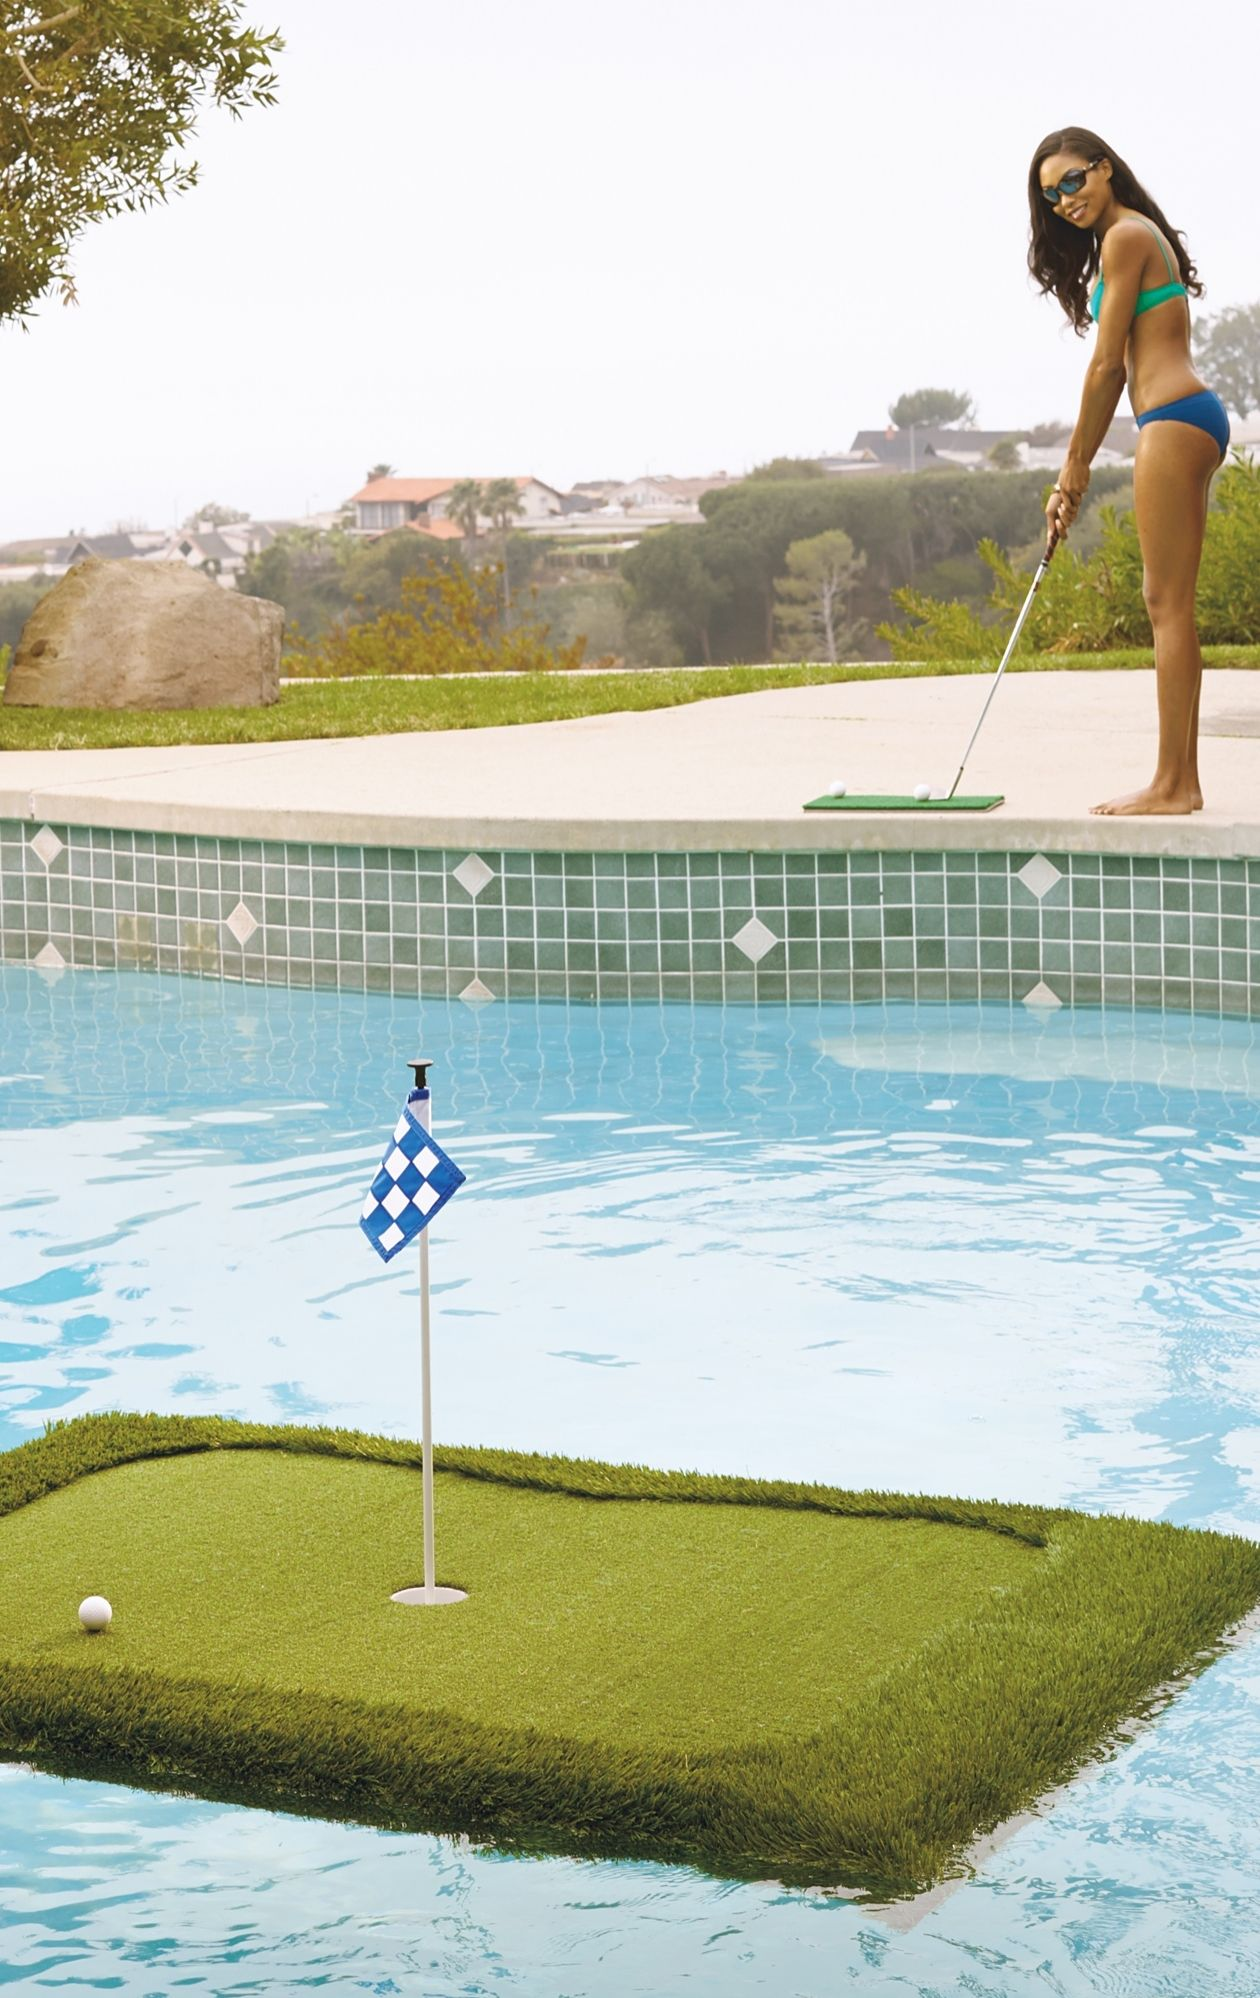 practice lofting the perfect pitch over a water hazard with our